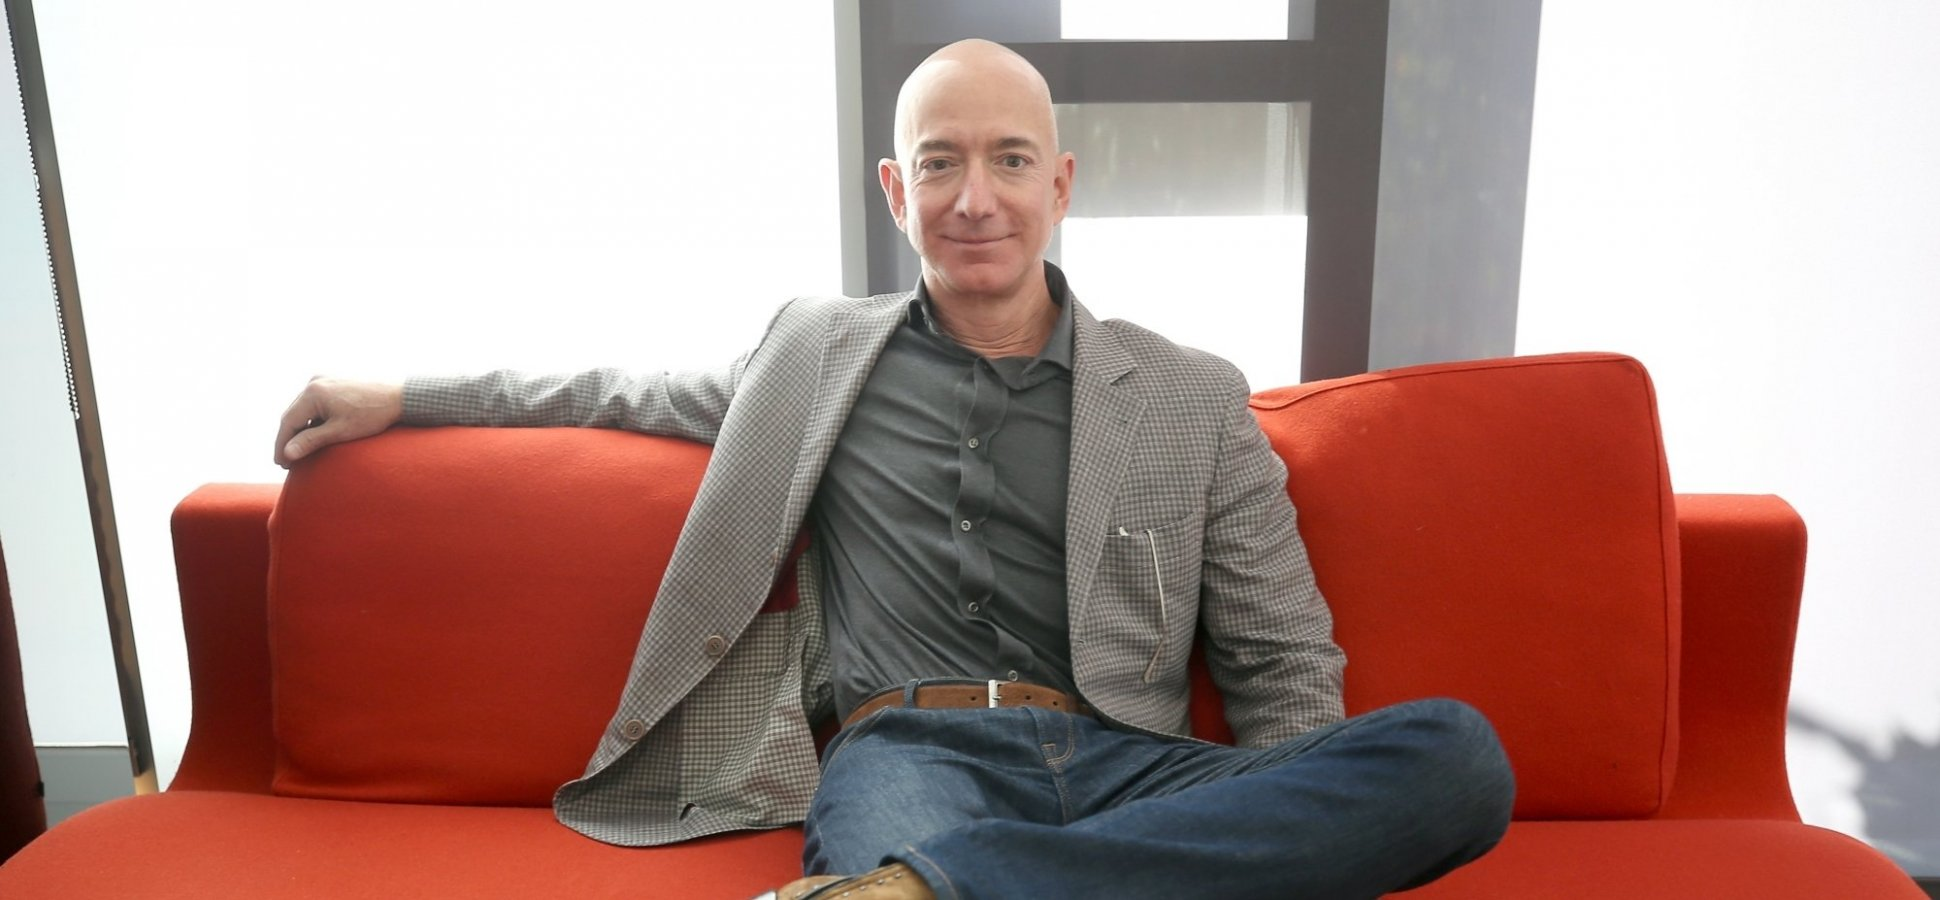 It Took Jeff Bezos Exactly 2 Sentences to Teach a Major Lesson in Achieving Great Focus